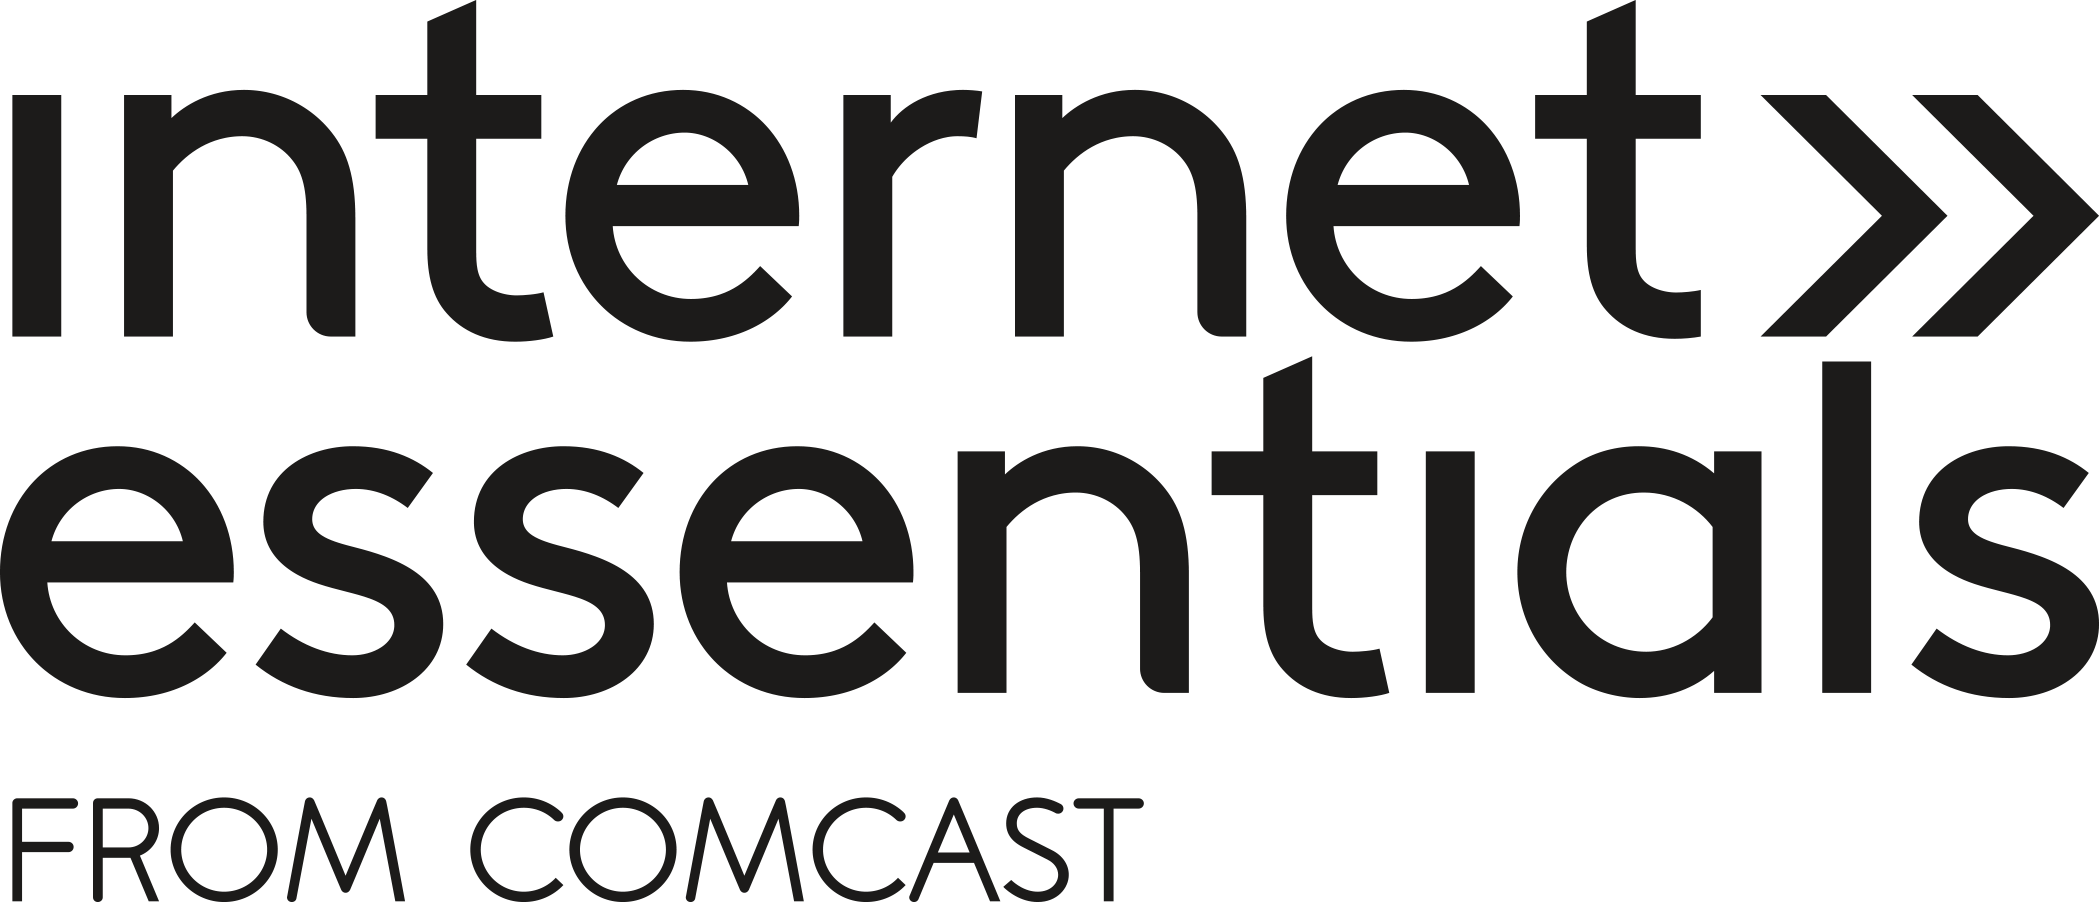 Comcast_IE_Black_CMYK